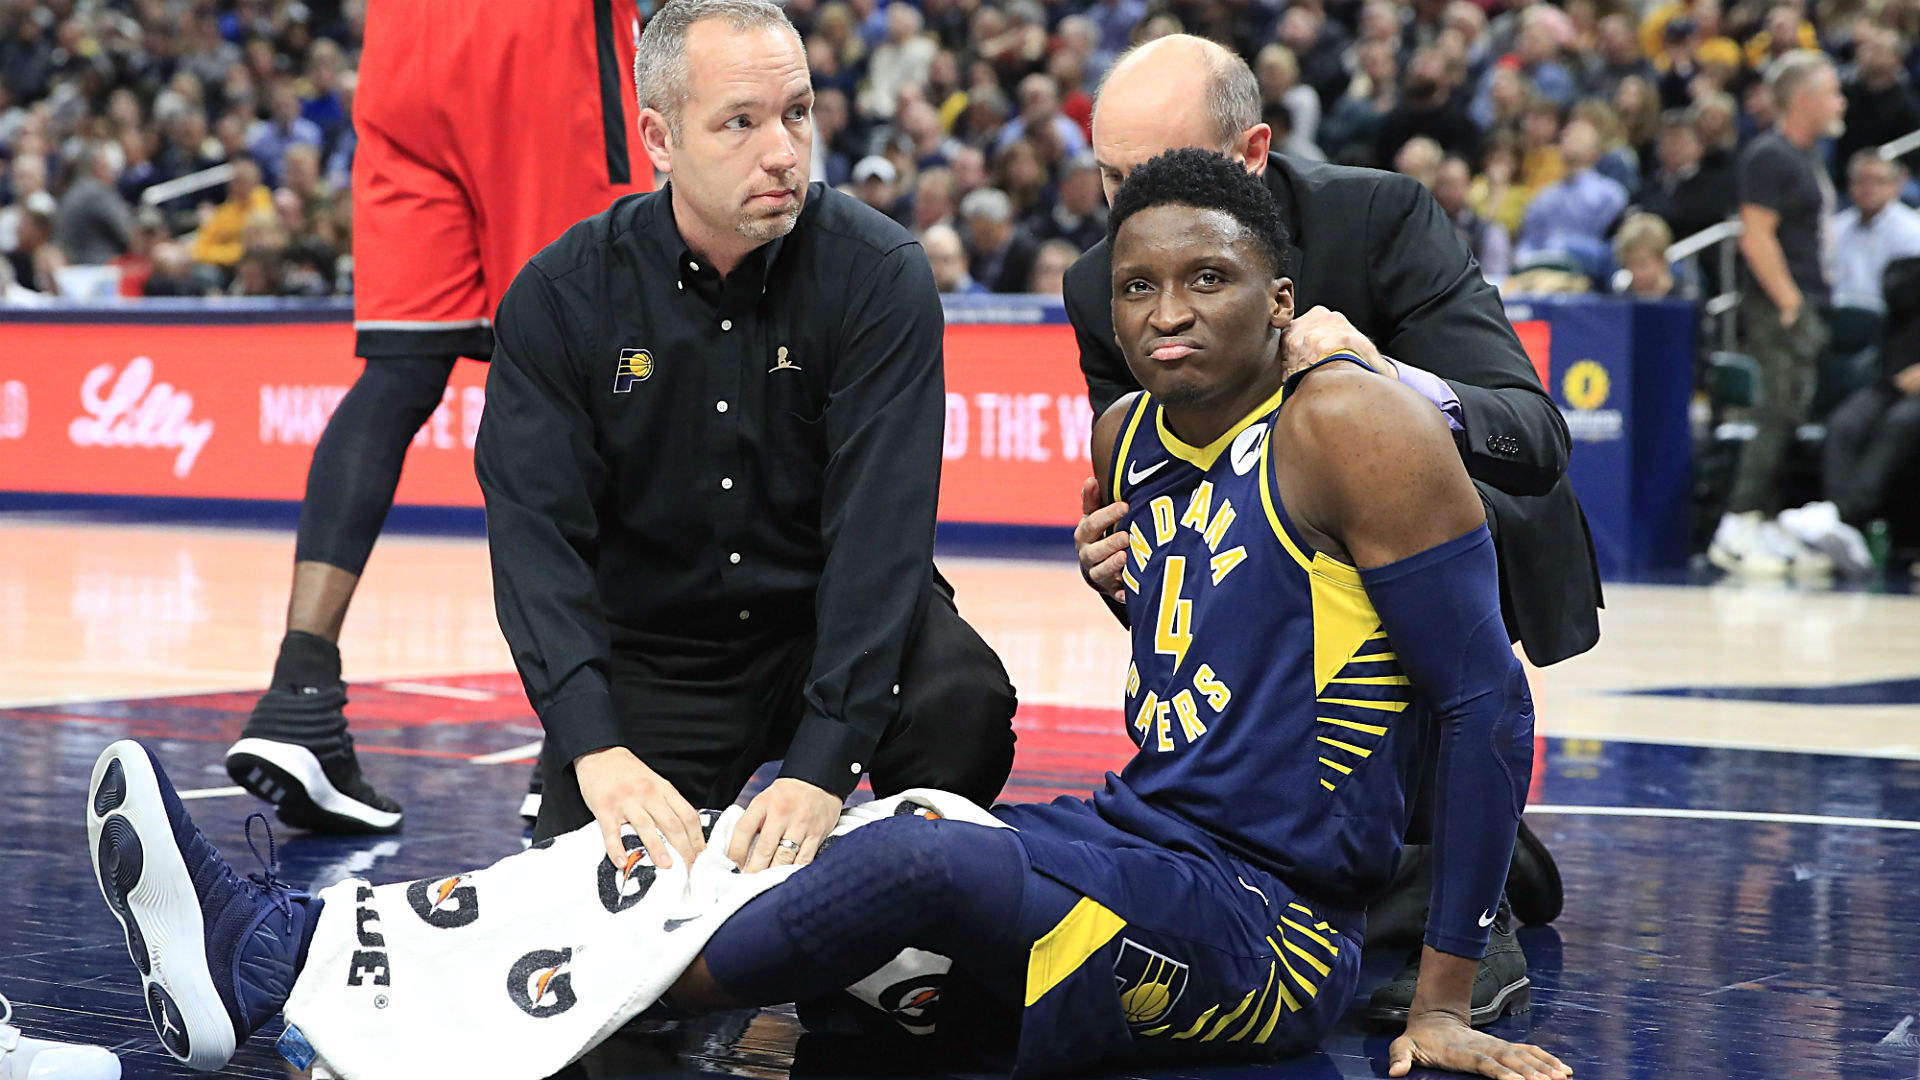 Pacers fear standout guard Oladipo lost for season